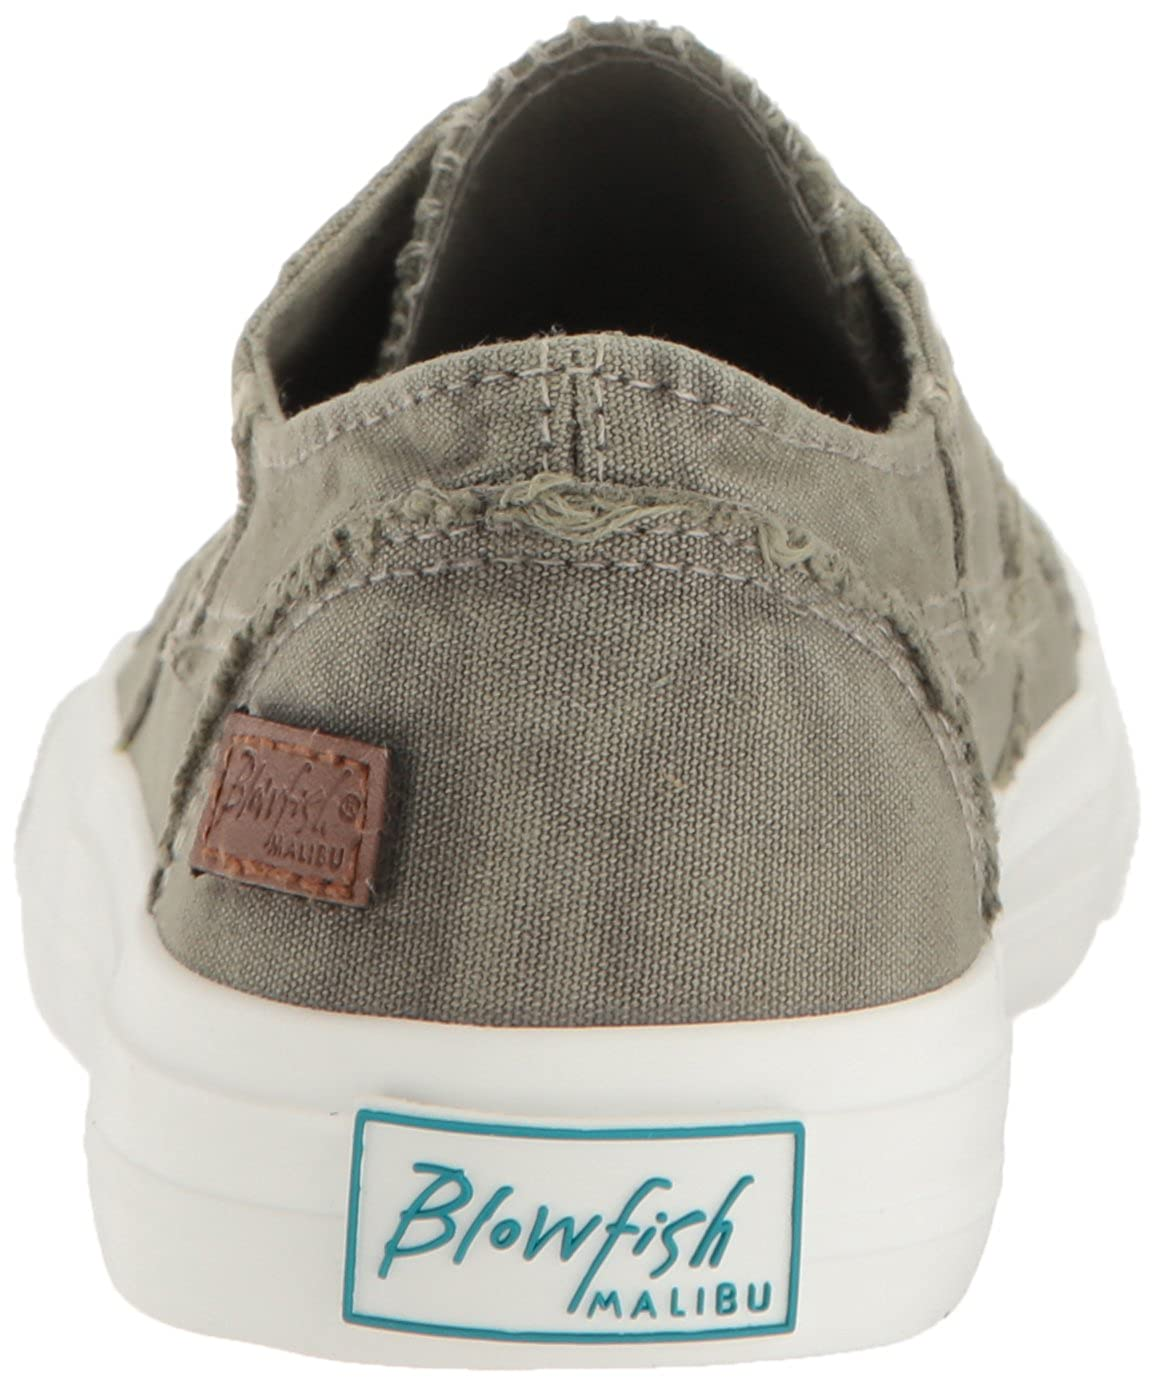 d06a1566b58c0 Amazon.com | Blowfish Women's Marley Sneaker | Fashion Sneakers